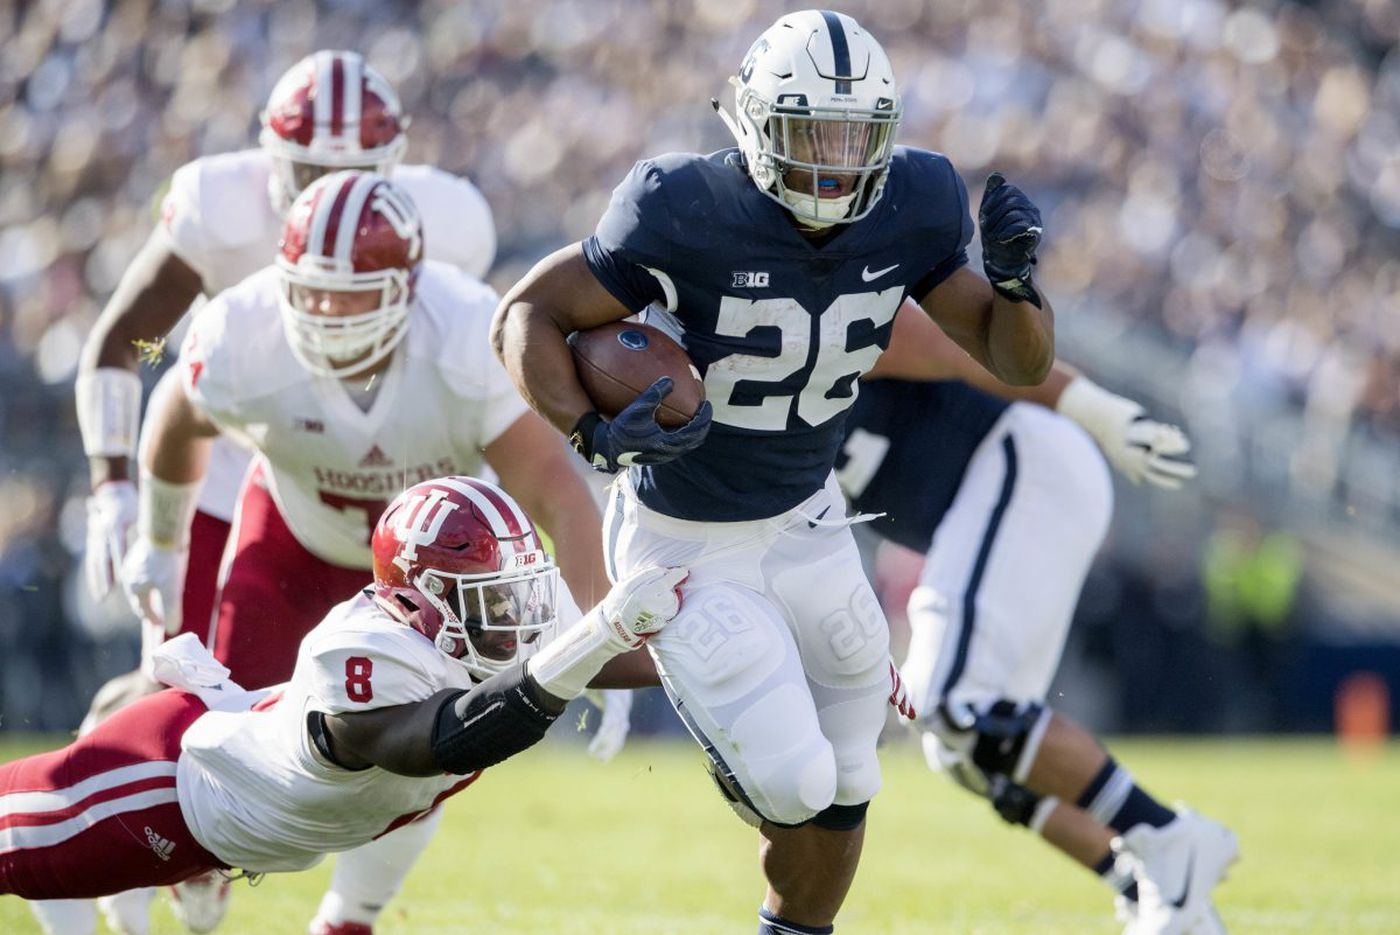 Stopping Saquon Barkley tops Michigan's to-do list | Big Ten notes